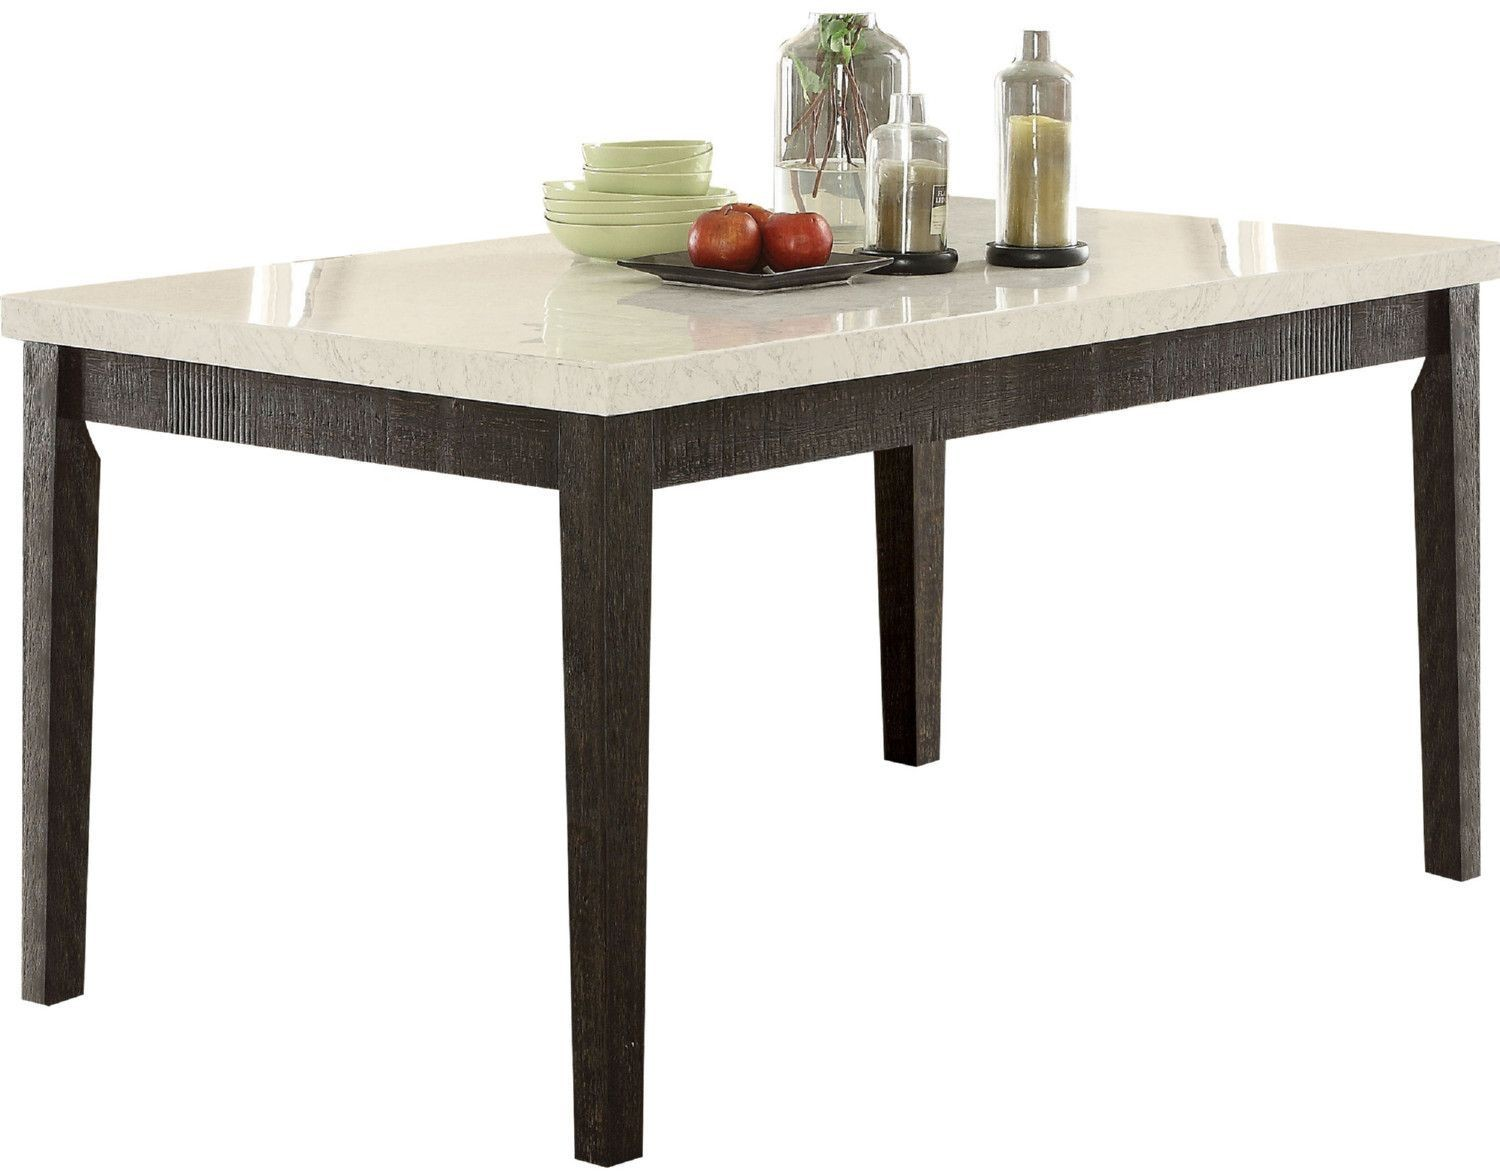 acme nolan white marble and salvage dark oak dining table pedestal accent wipeable tablecloth outdoor side plastic home office furniture chestnut antique square coffee basement